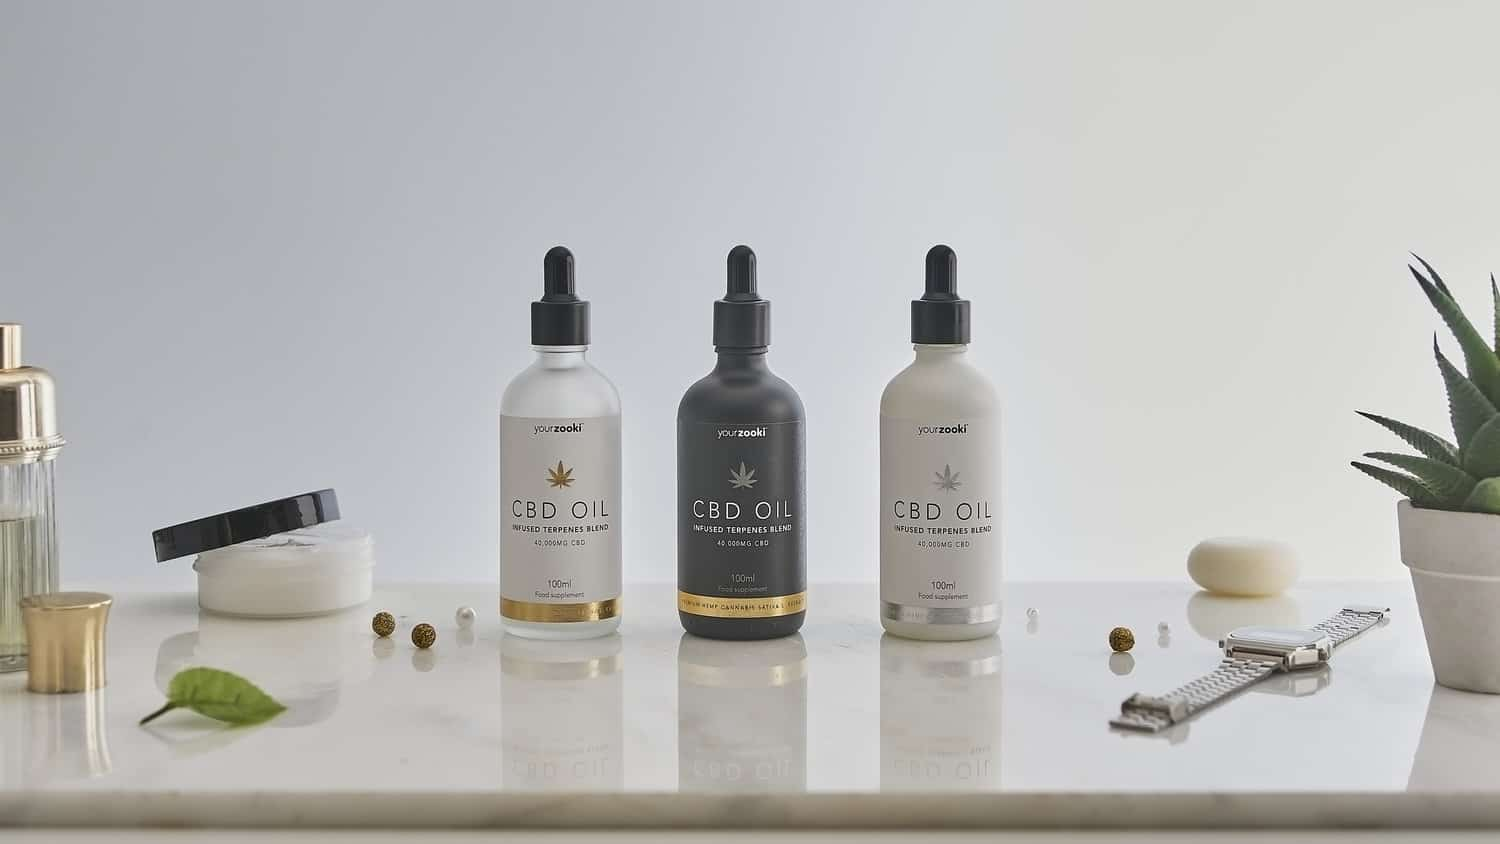 Group product photograph of apothecary bottles in lifestyle minimal setting